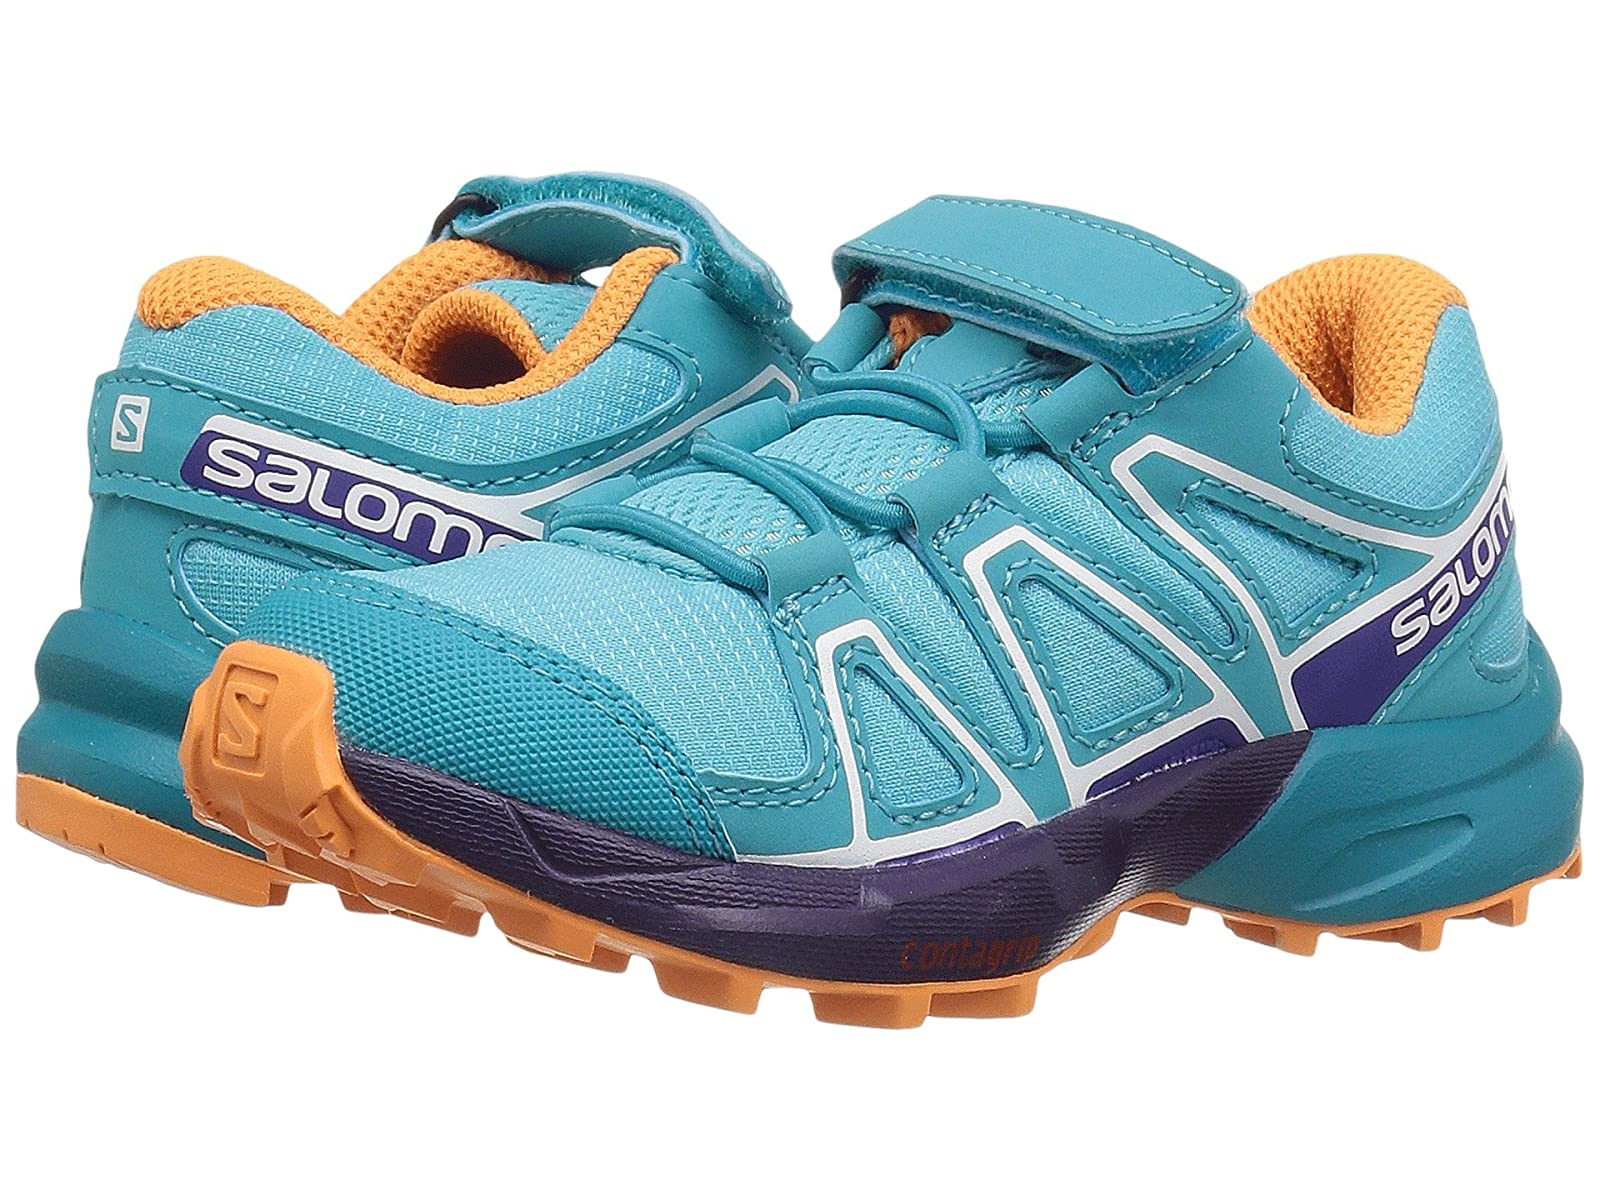 Salomon Kids Speedcross Bungee (Toddler/Little Kid)Atmospheric grades have affordable shoes